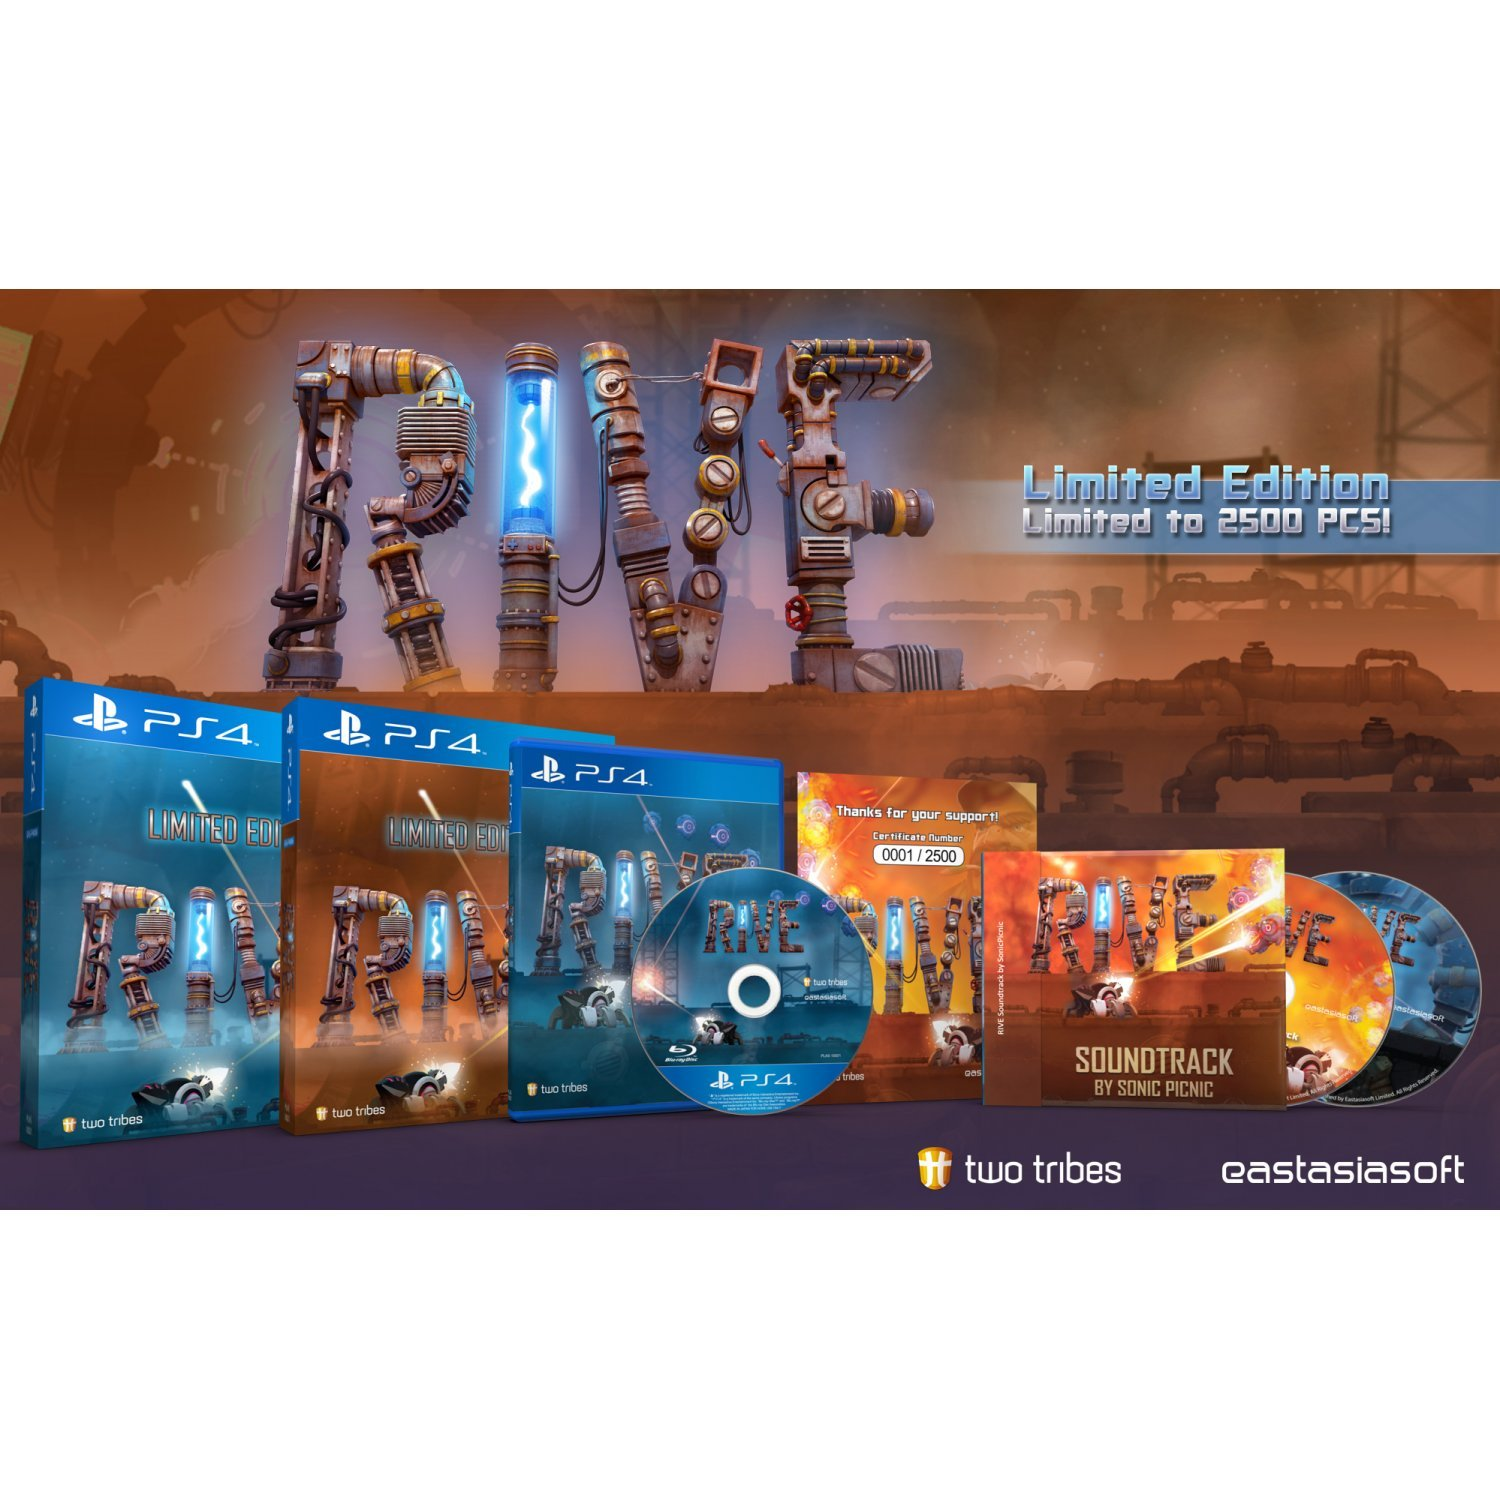 Tag lrg sur  - Page 2 Rive-blue-cover-limited-edition-playasia-com-exclusive-527797.2